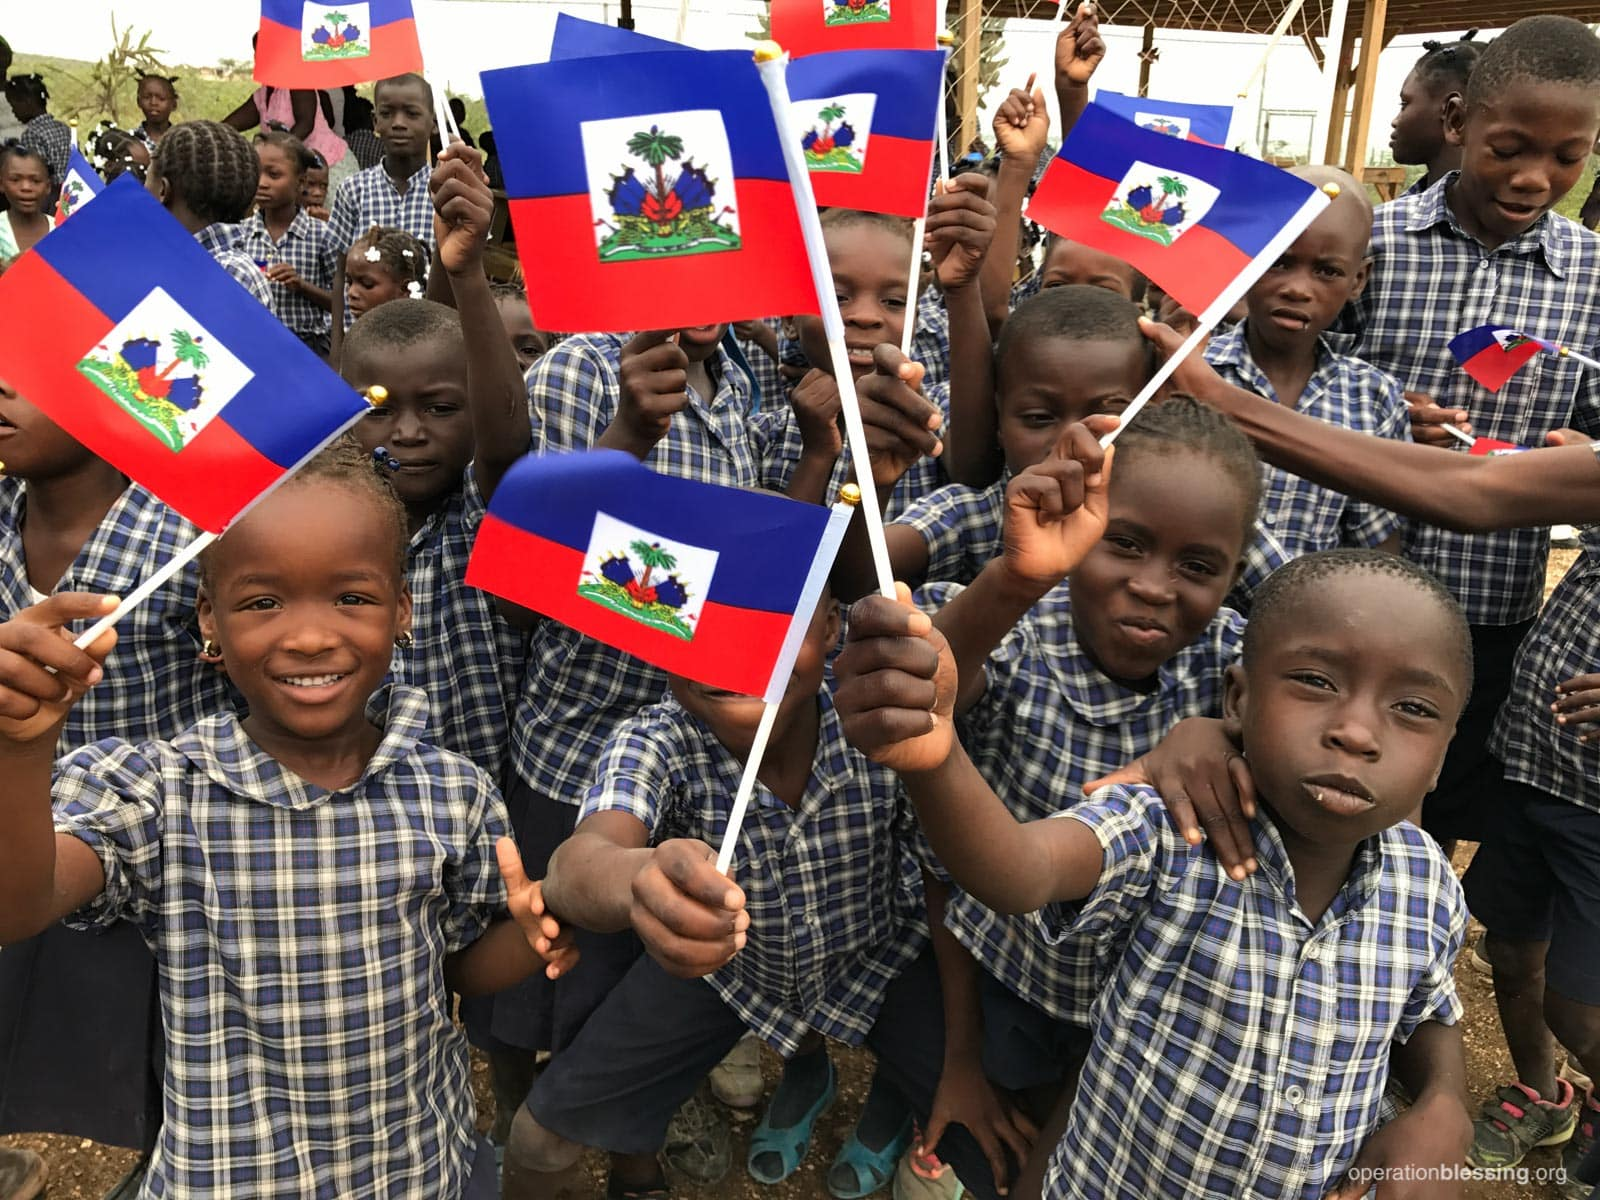 Operation Blessing students in Haiti wave their national flags.